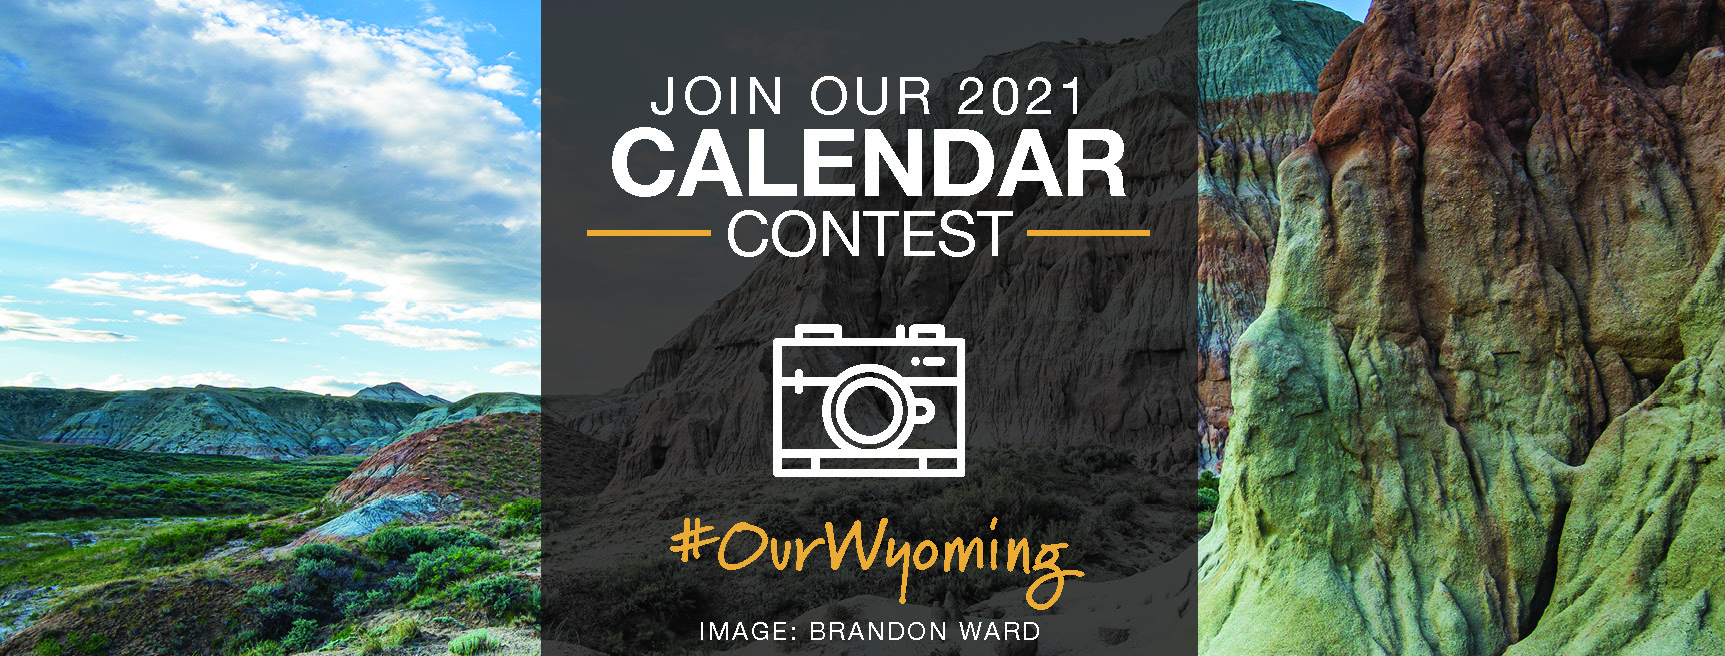 We're celebrating #OurWyoming, and want to see your best photos!